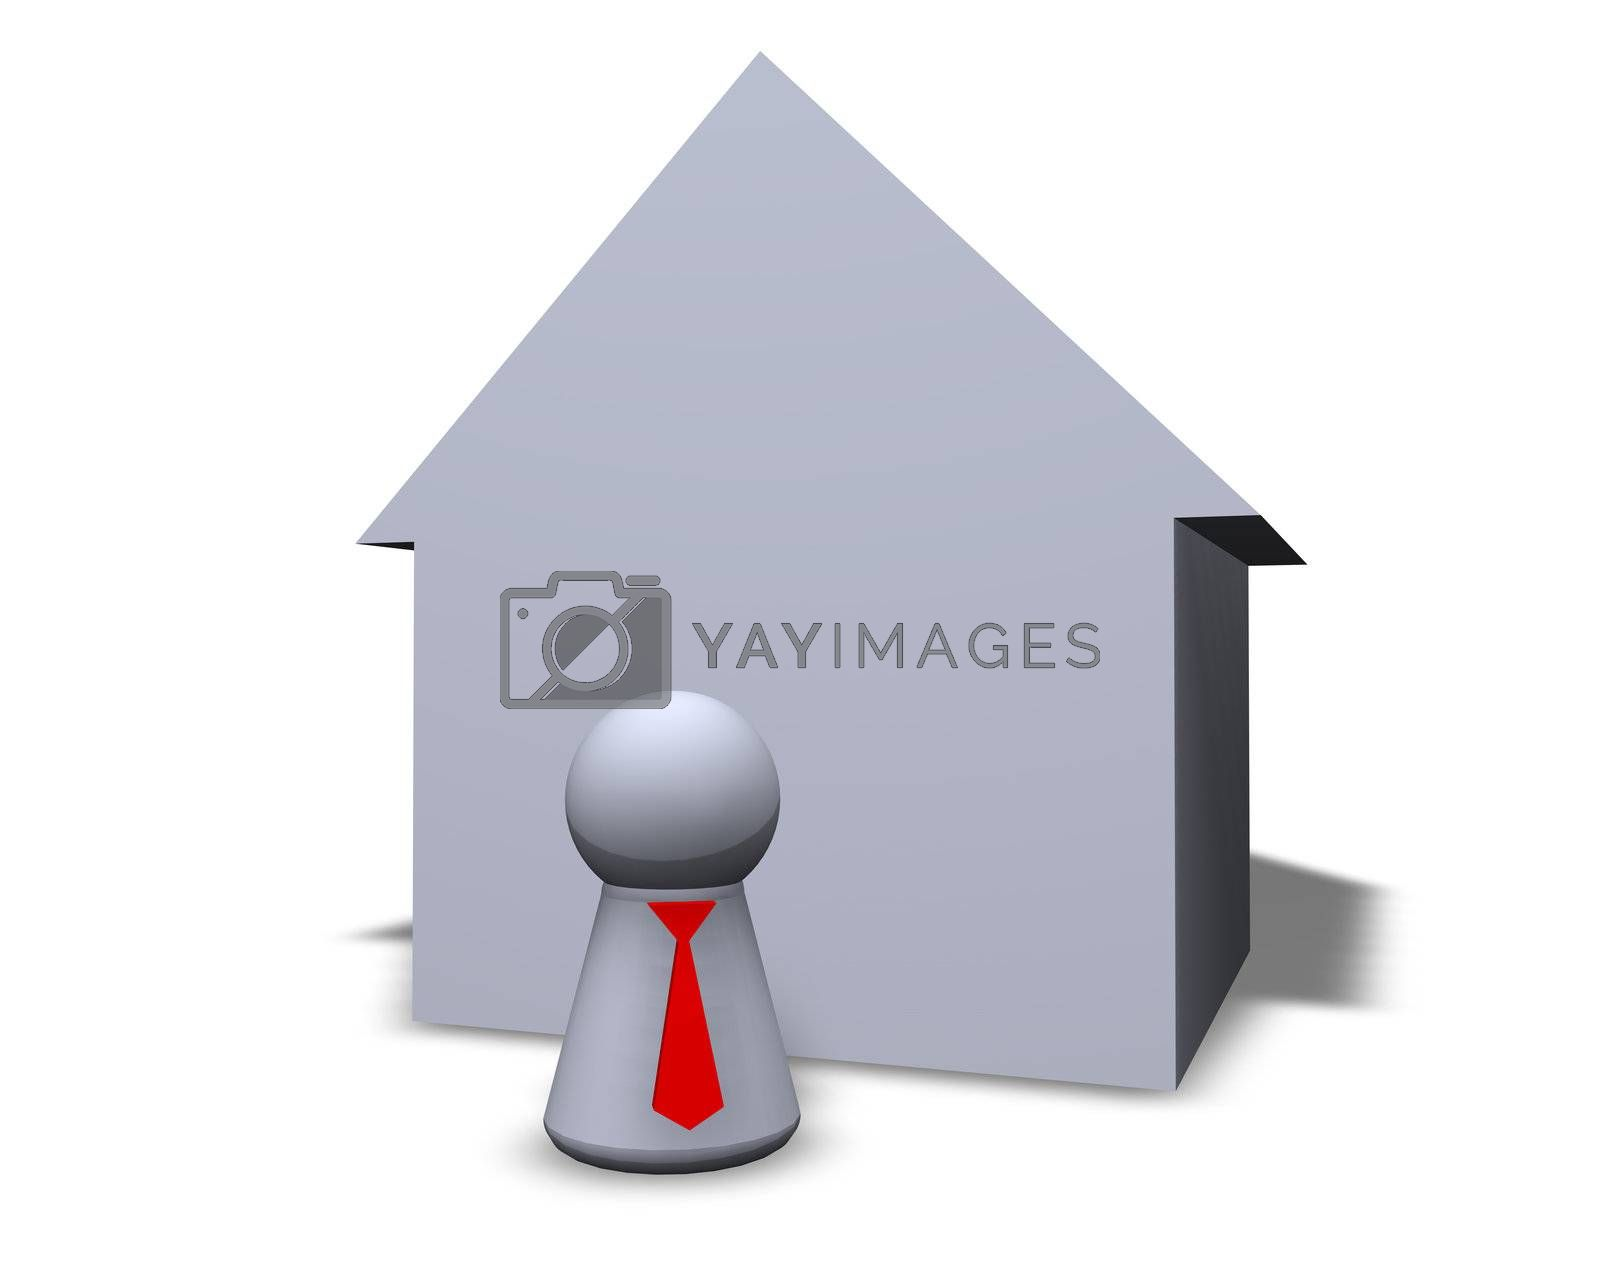 play figure with red tie and house